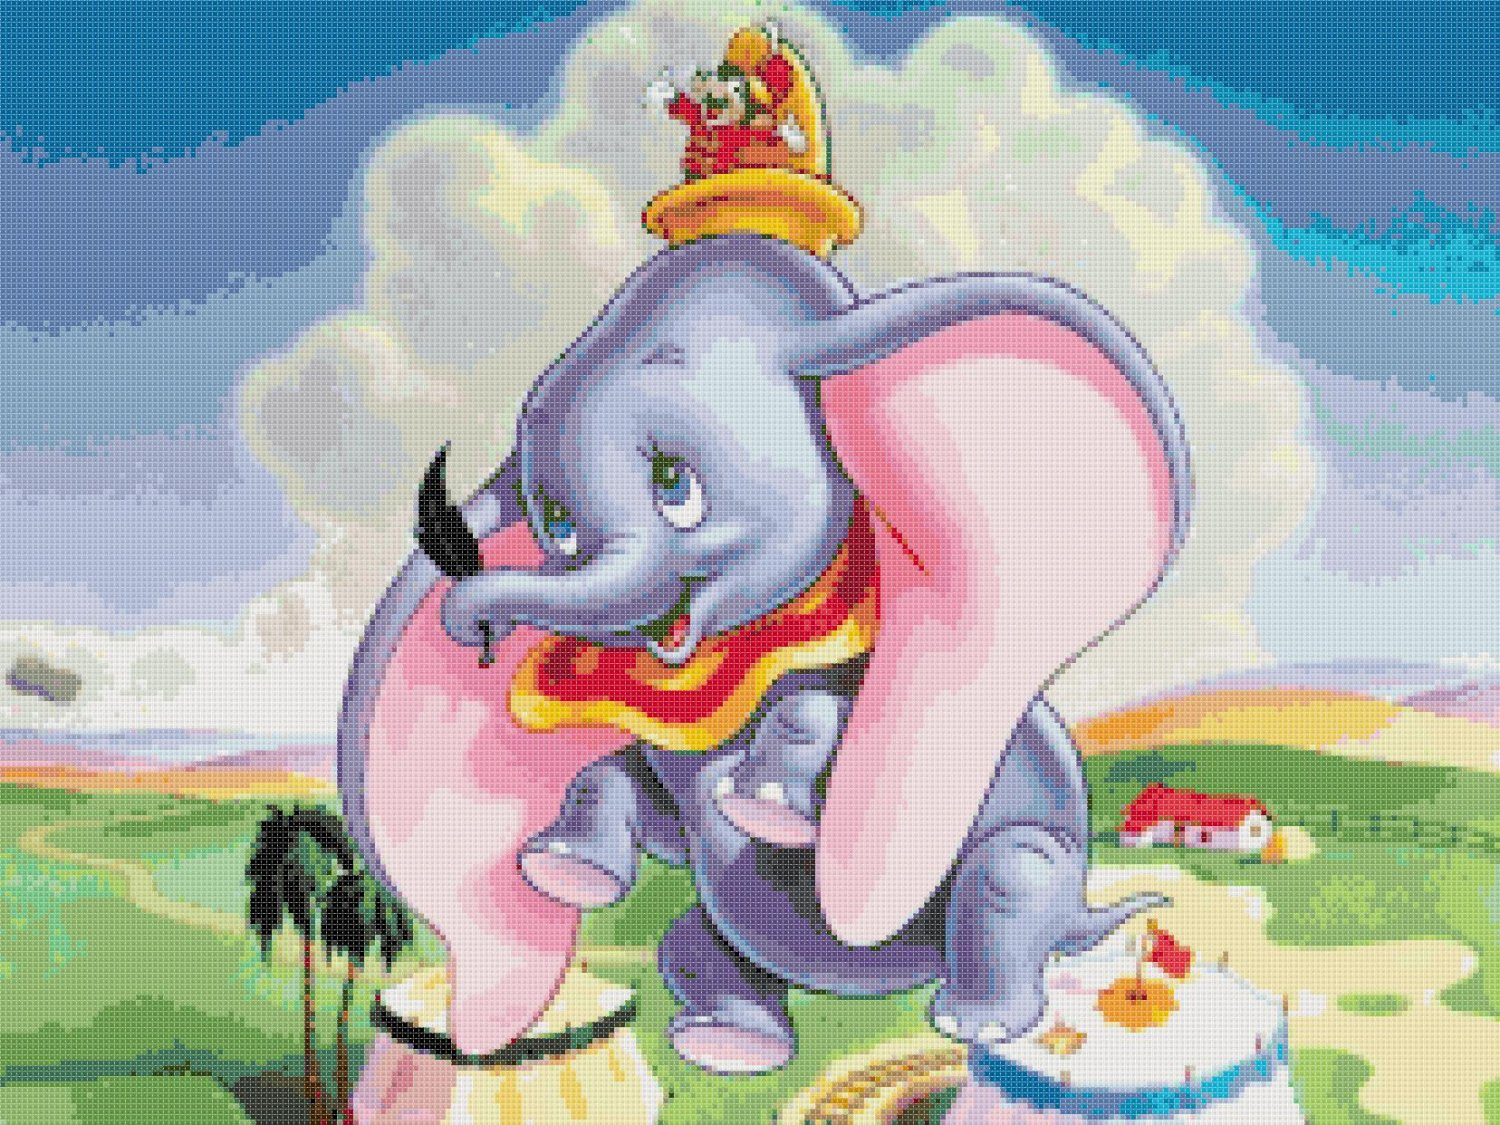 counted Cross stitch pattern Dumbo in the sky disney 276x207 stitches E967